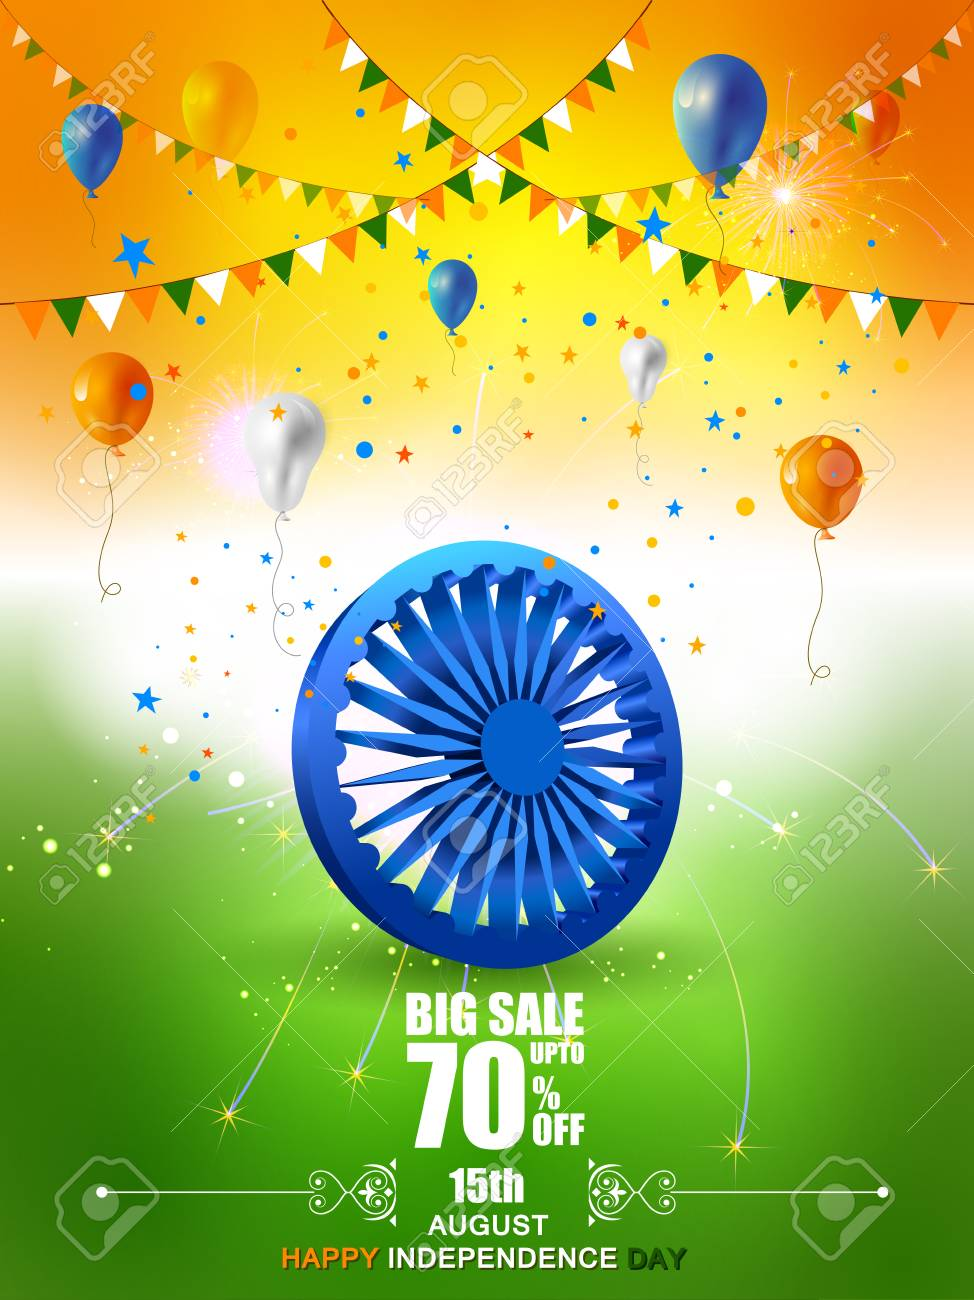 Indian Flag on Happy Independence Day of India Sale and Promotion